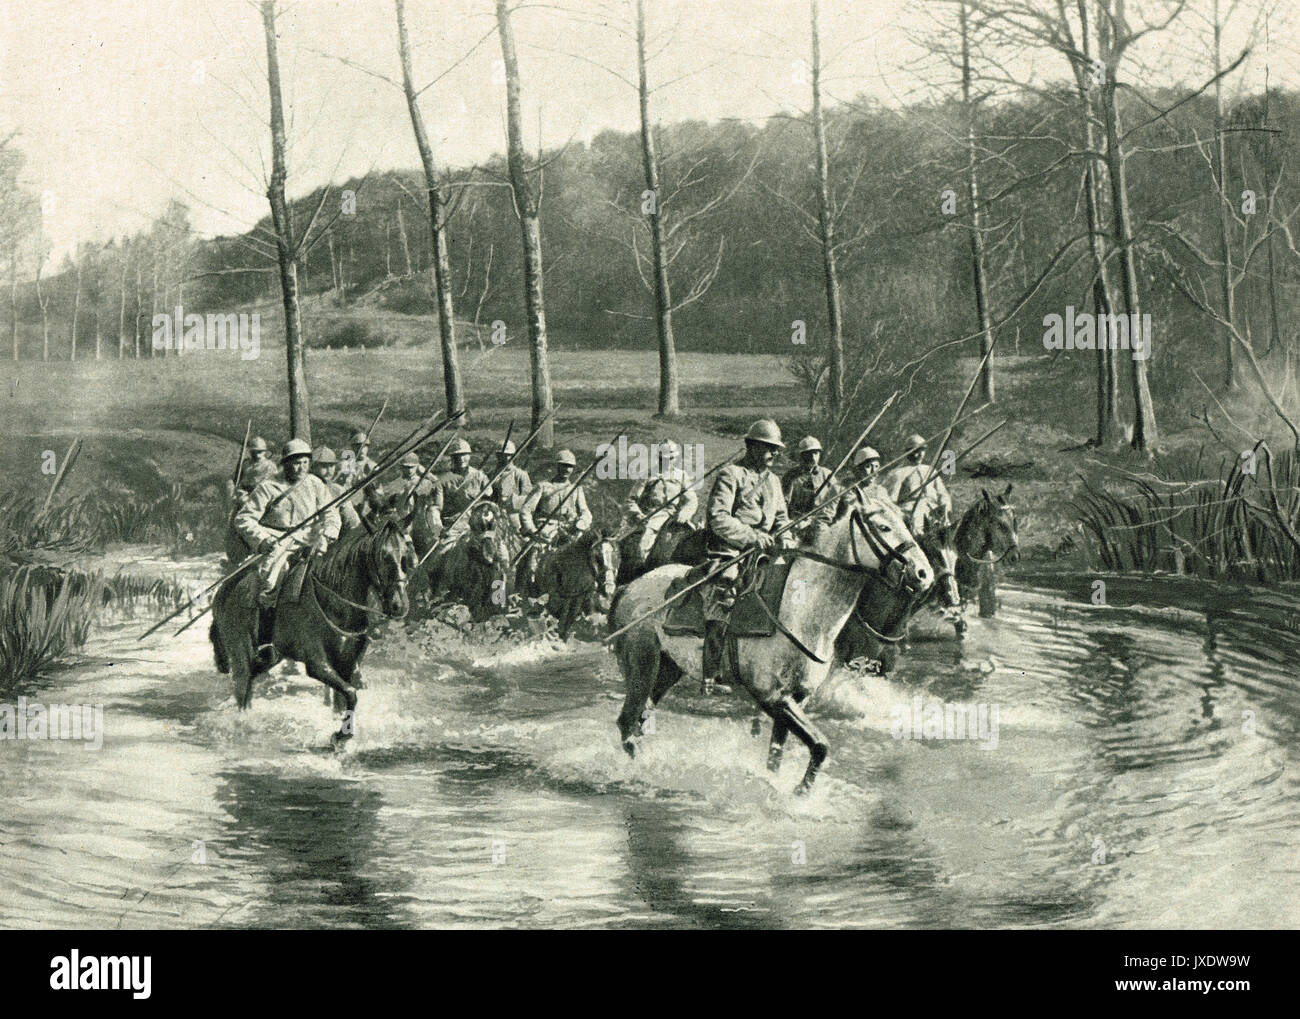 French cavalry crossing a river near Meuse, WW1 - Stock Image